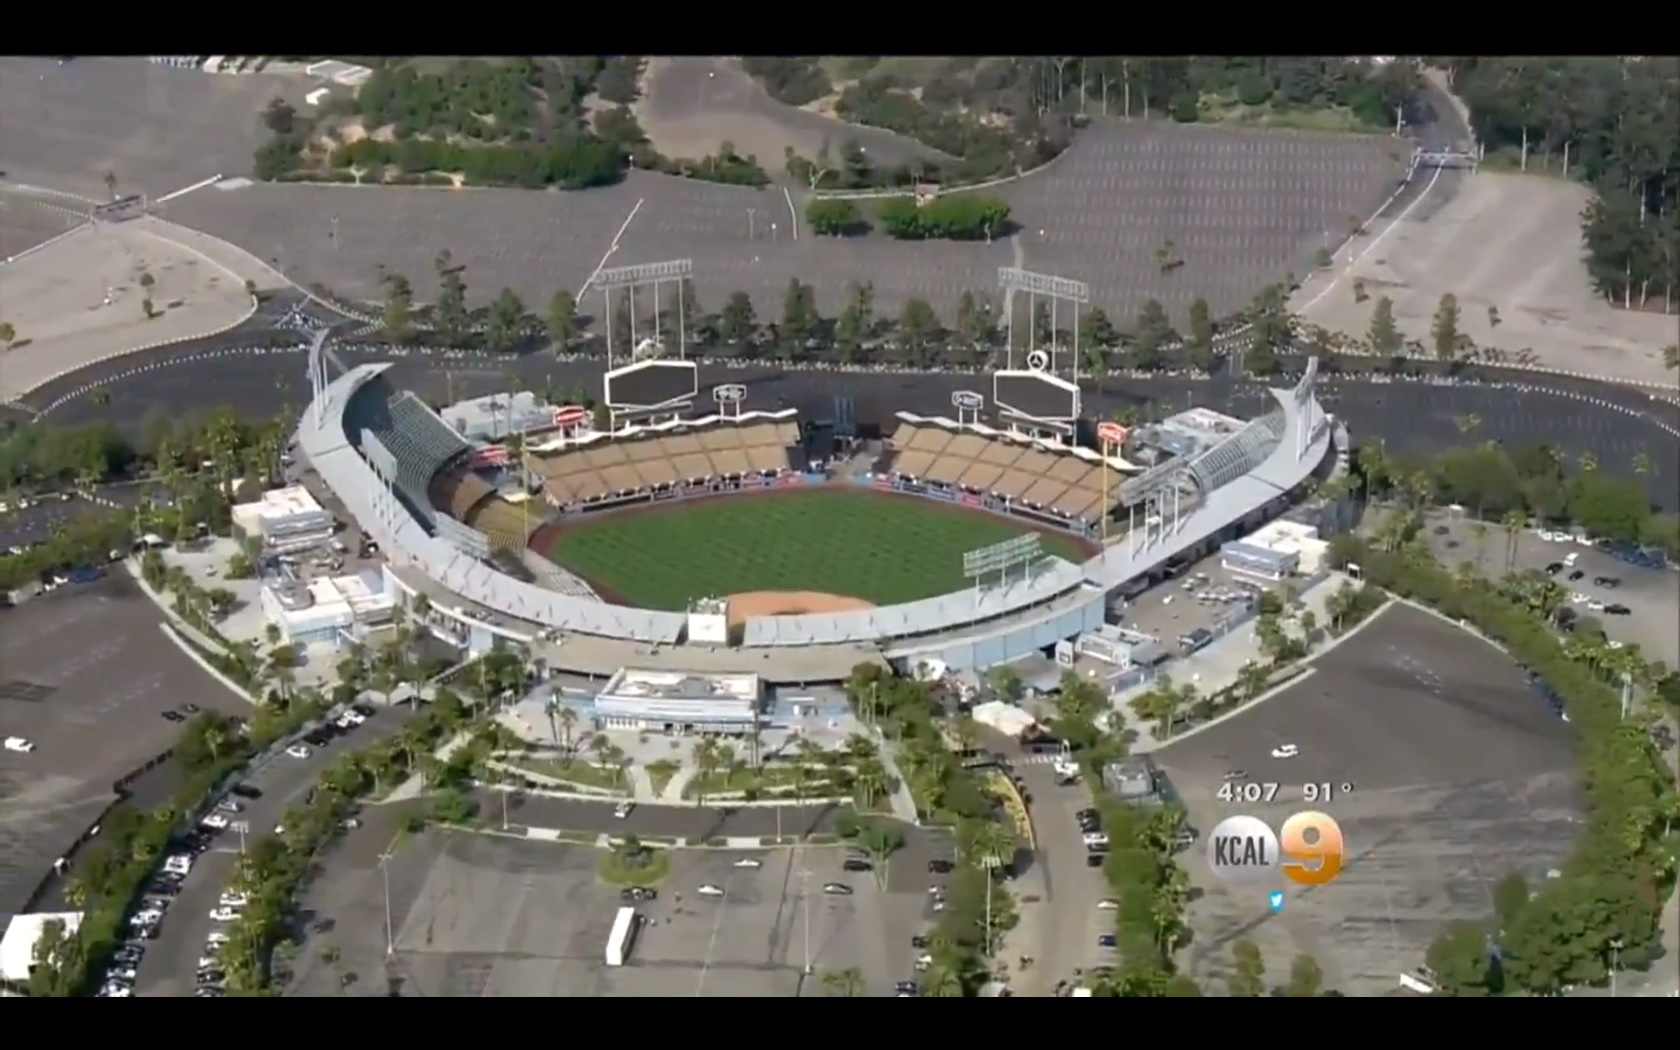 Fan critically injured in fight outside Dodger Stadium - CBS News